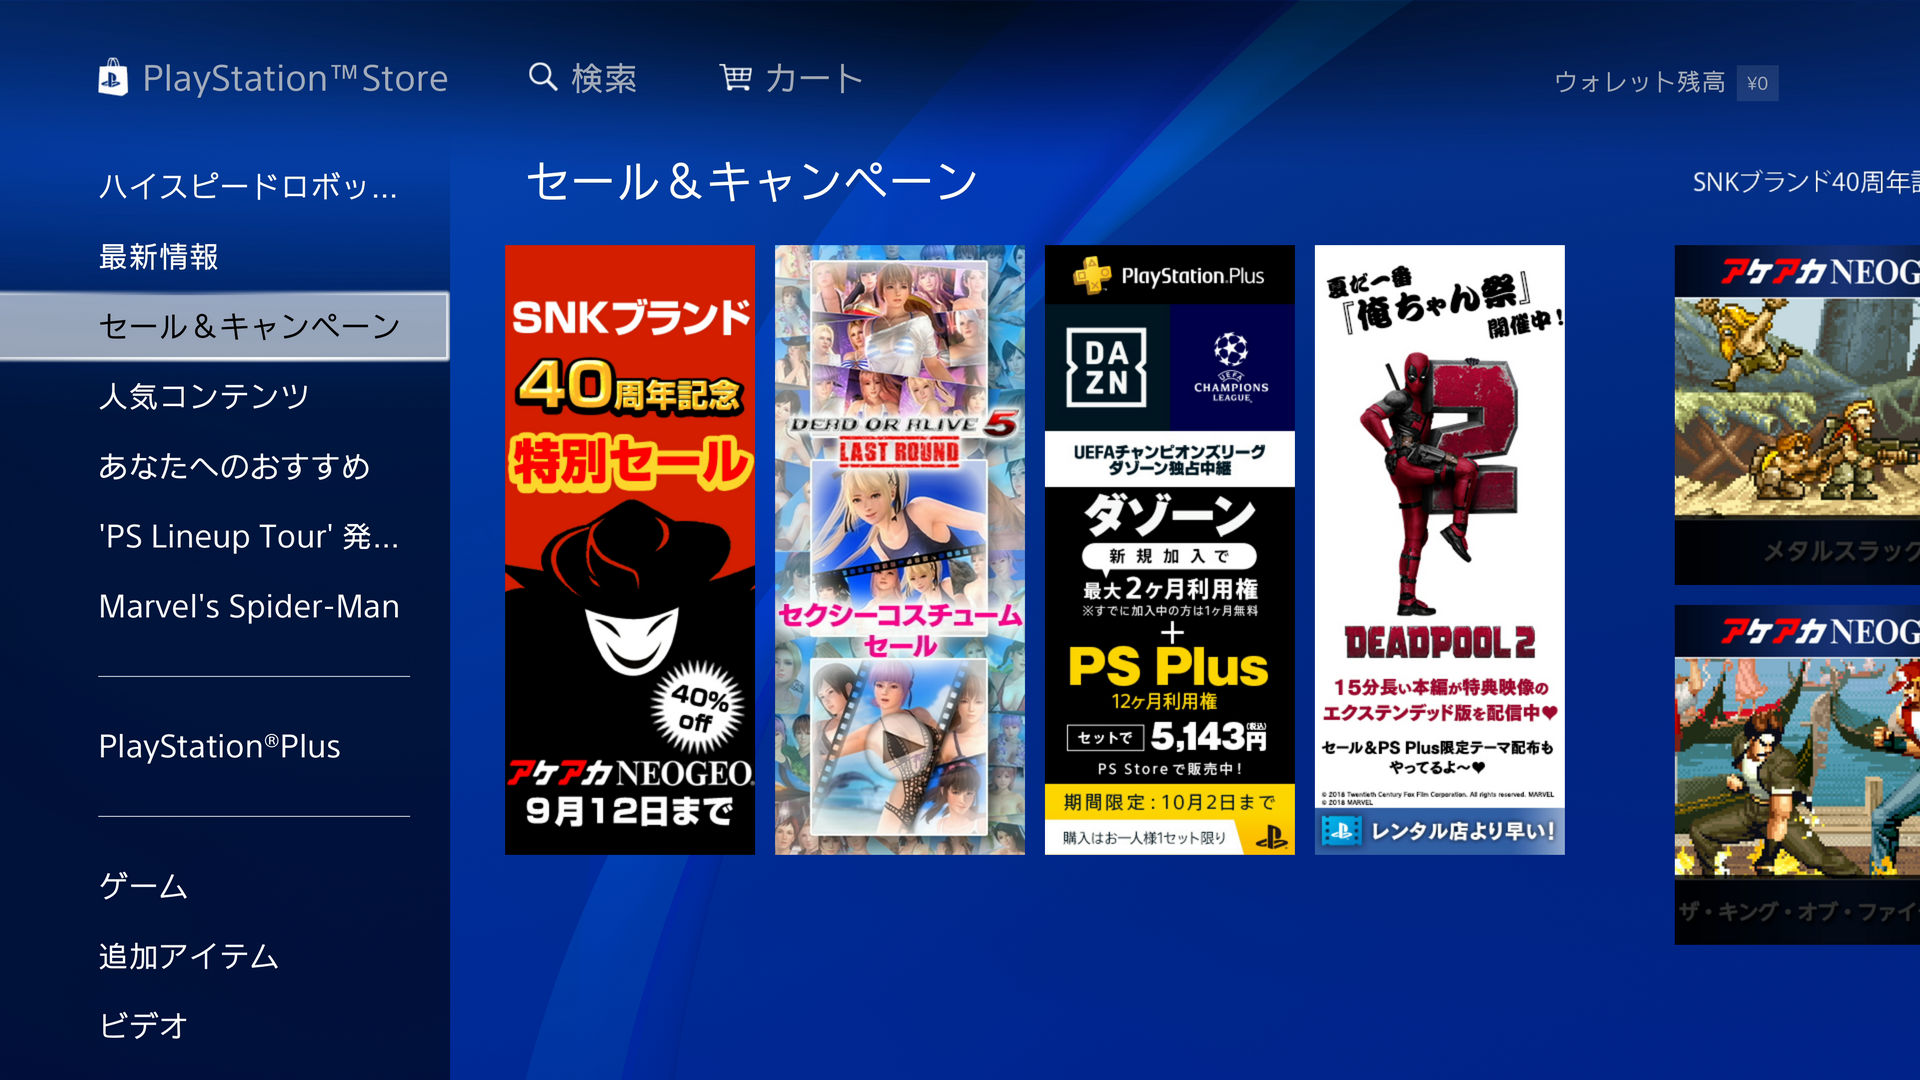 How to create a Japanese PSN account to get Japan-exclusive PS4